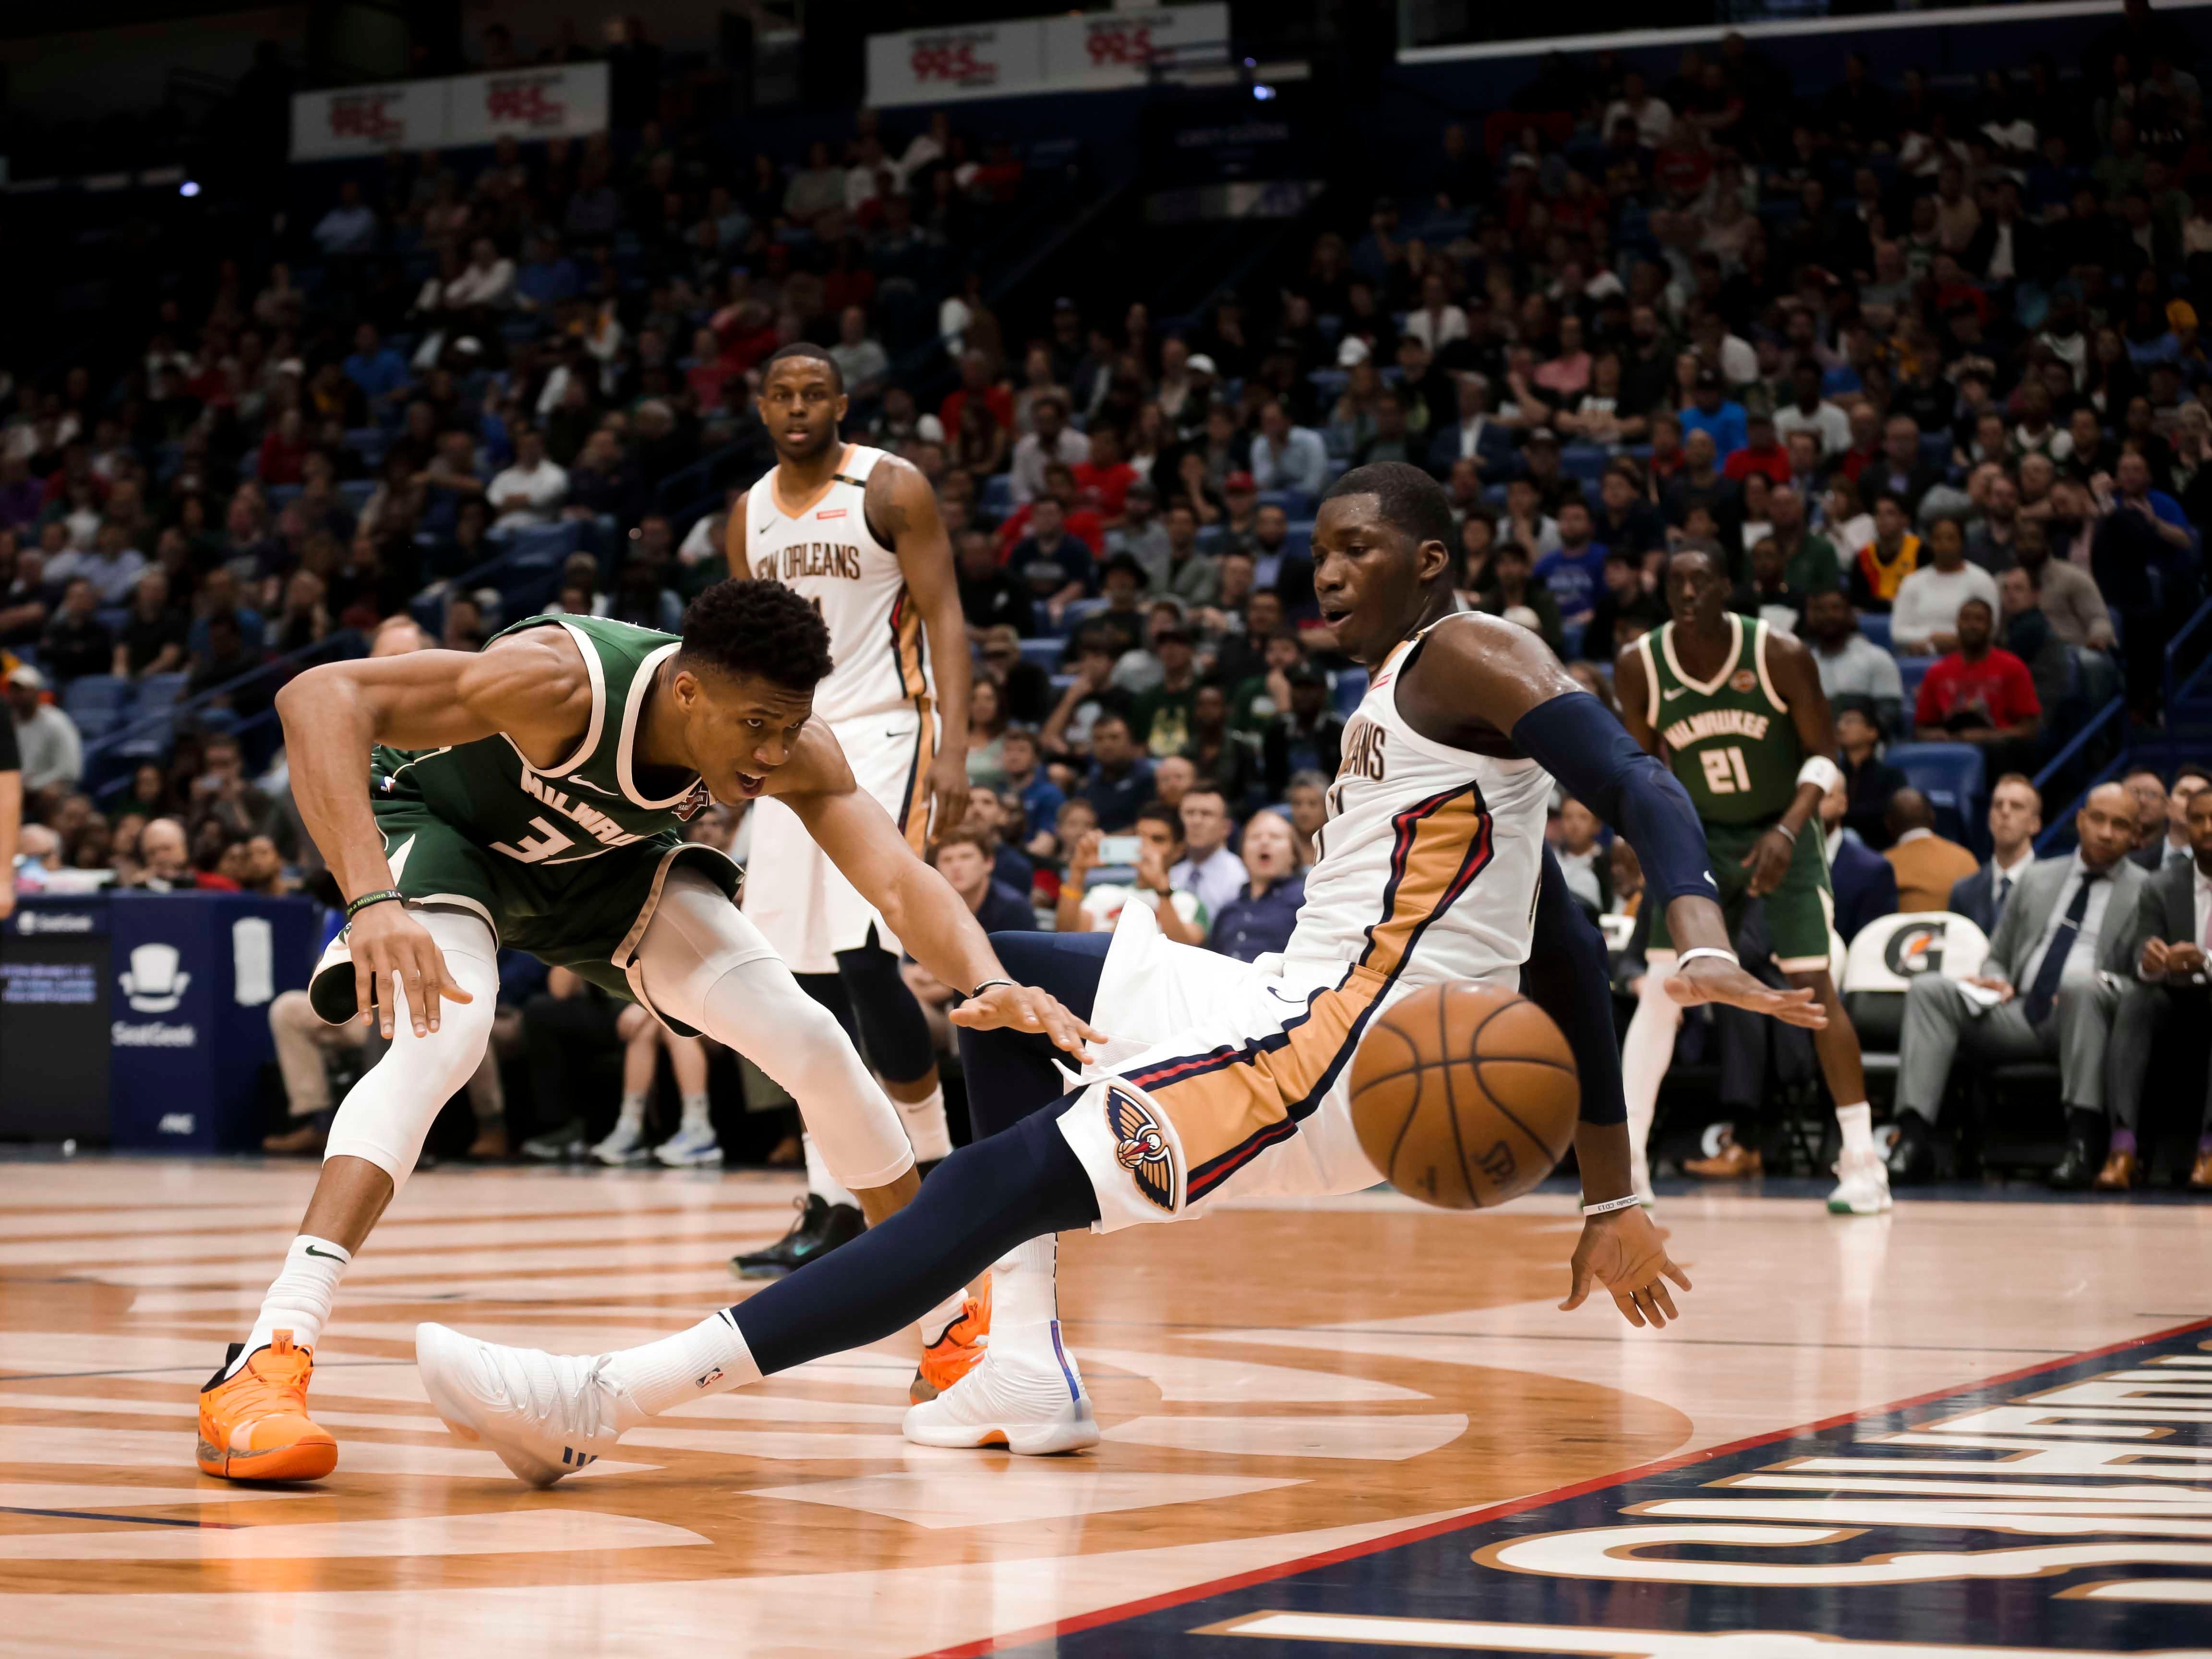 Bucks forward Giannis Antetokounmpo draws a foul on a collision with Pelicans forward Cheick Diallo during the second half.